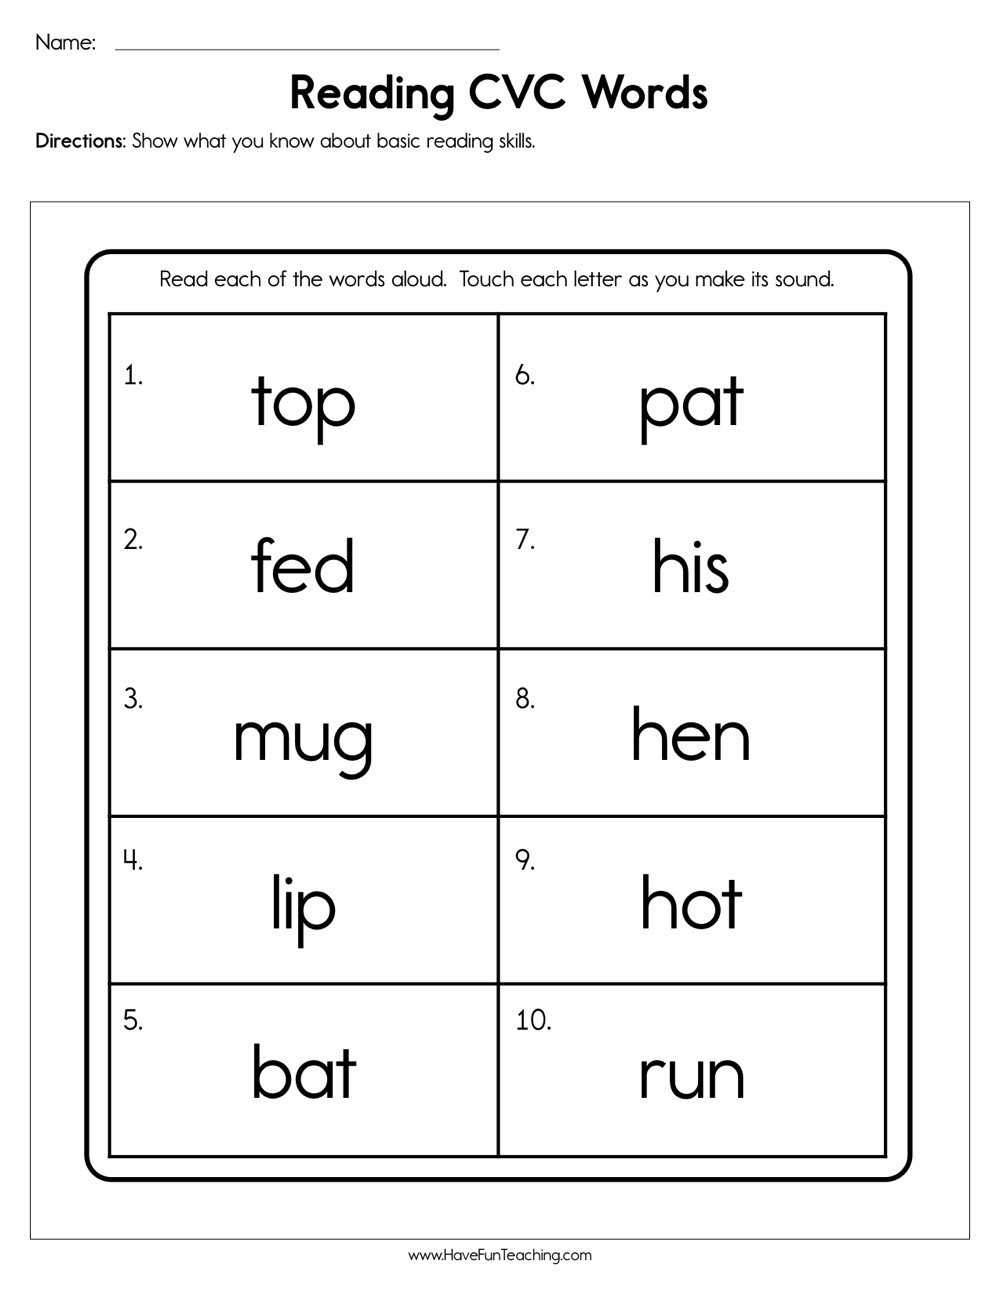 reading cvc words worksheet have fun teaching halloween activity sheets christmas worksheets for kids free